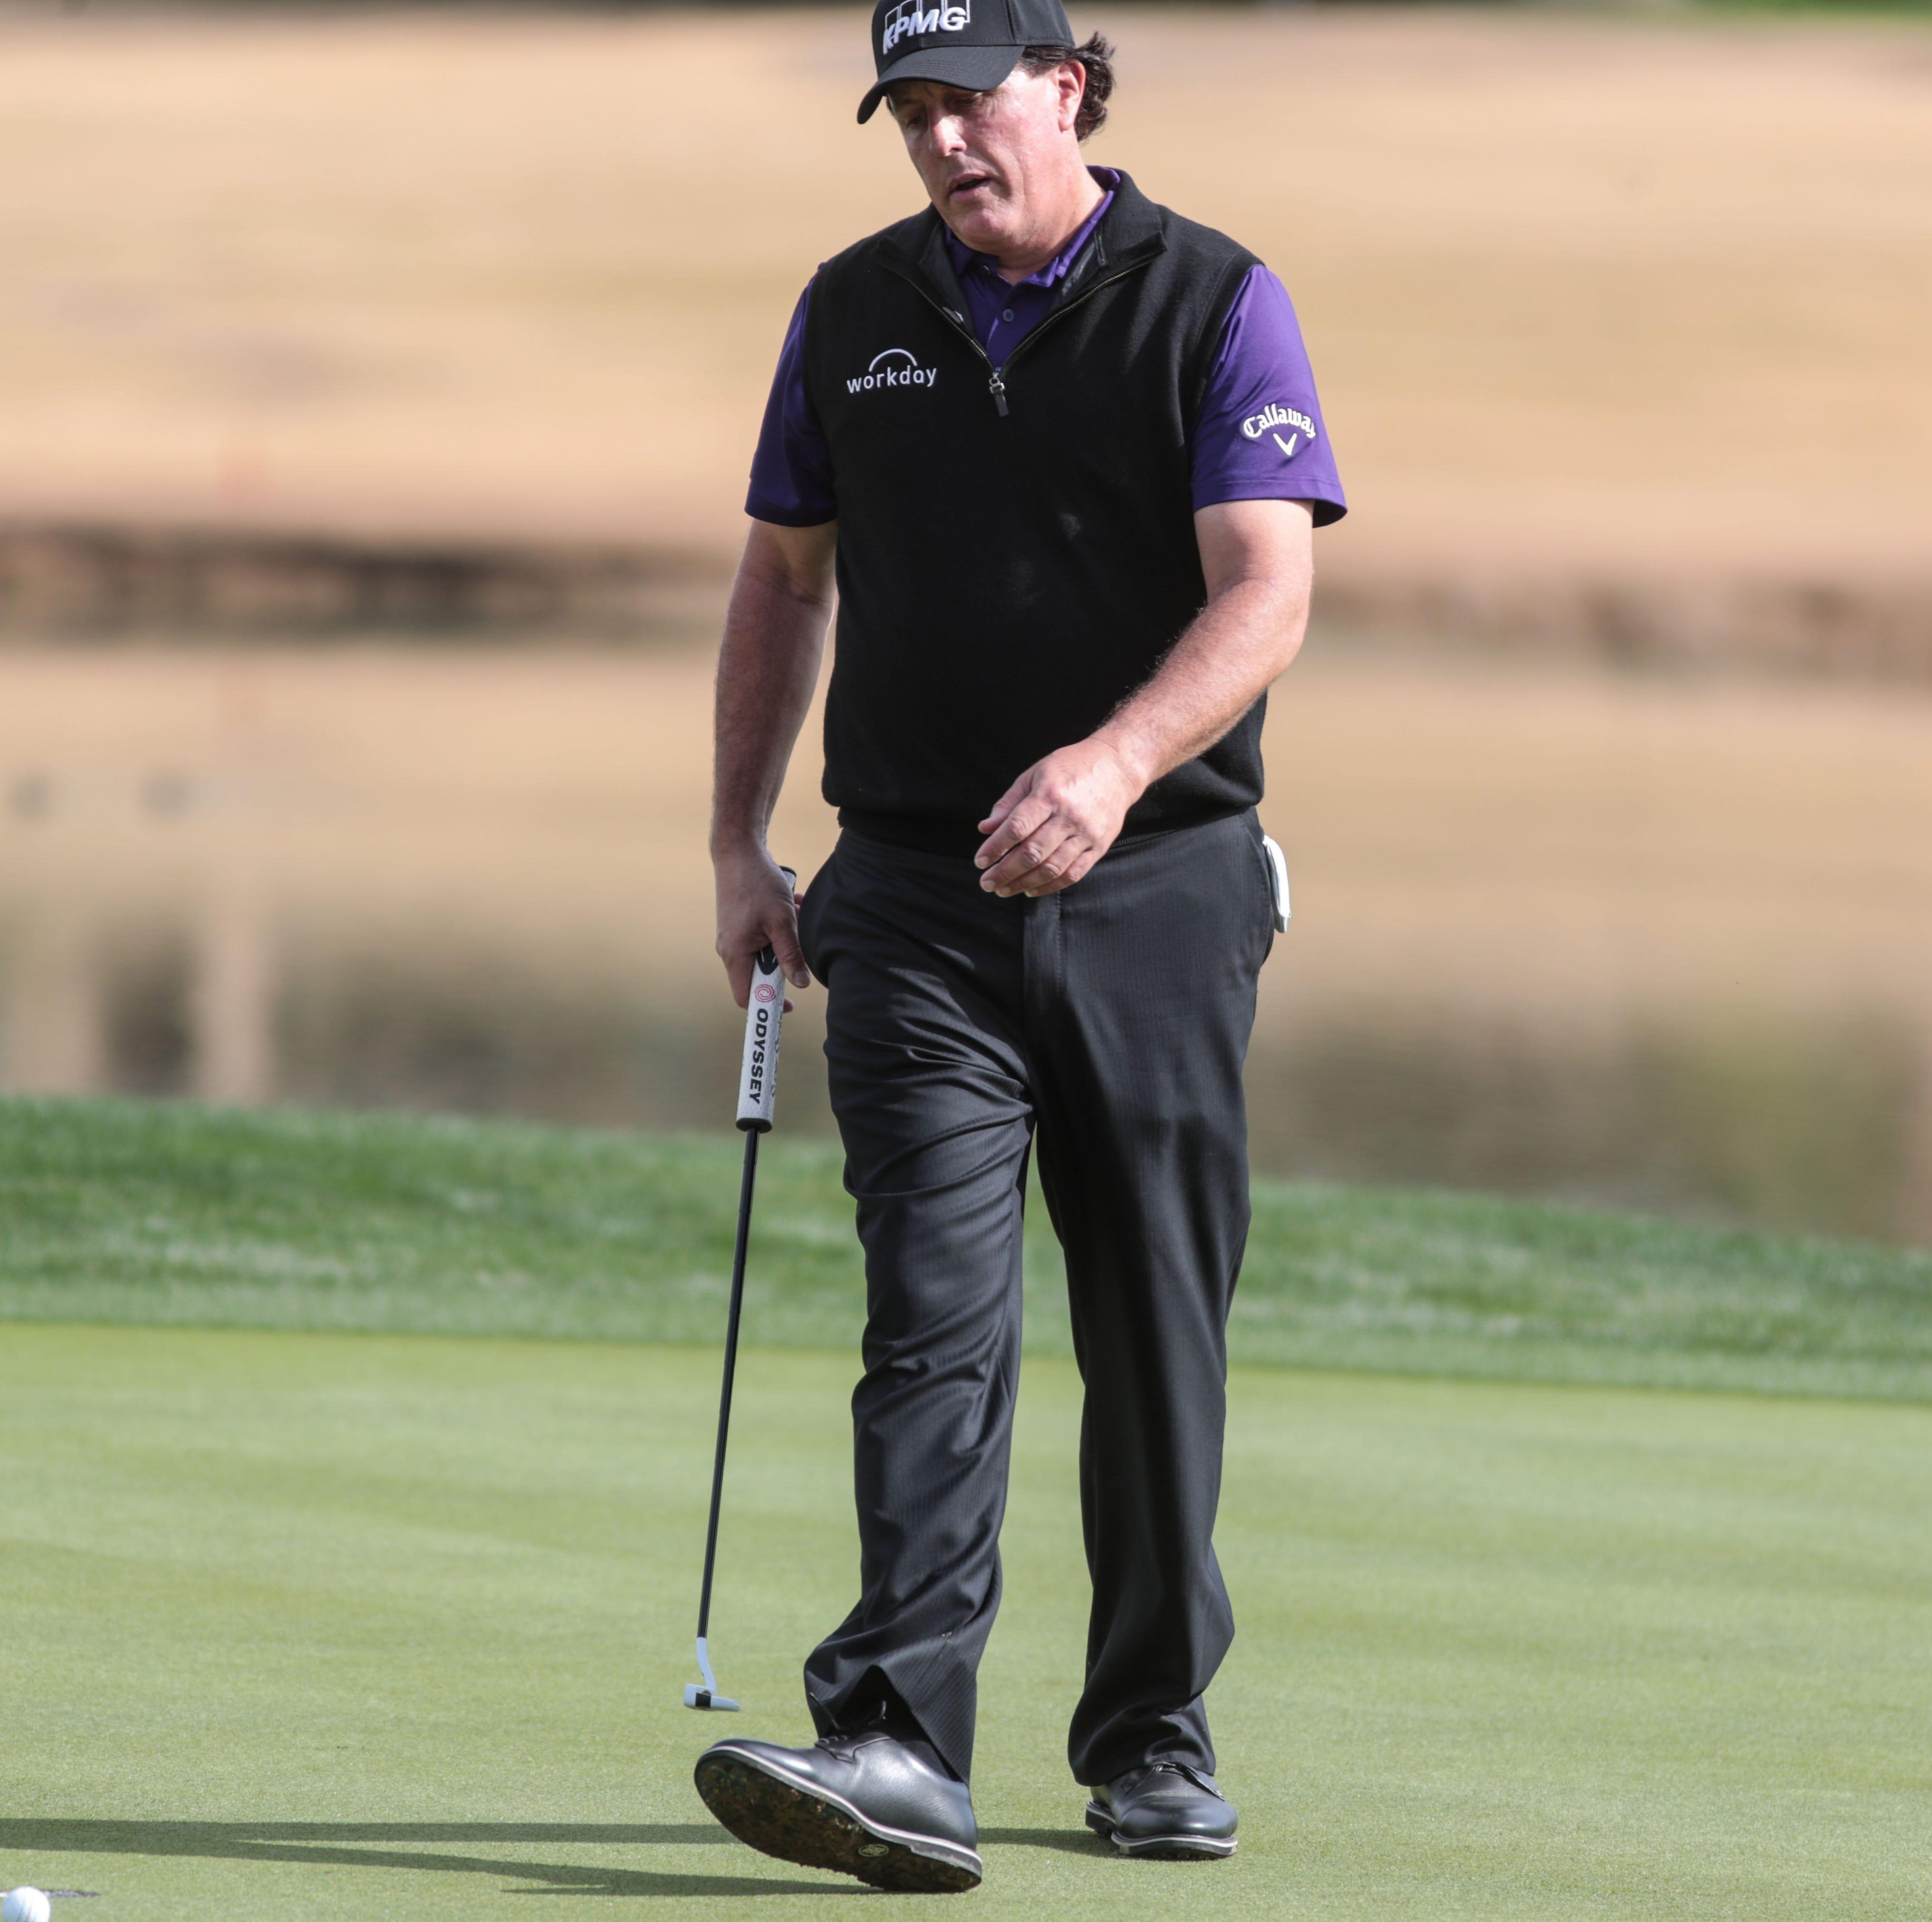 Phil Mickelson goes from sizzling to merely solid but still leads Desert Classic